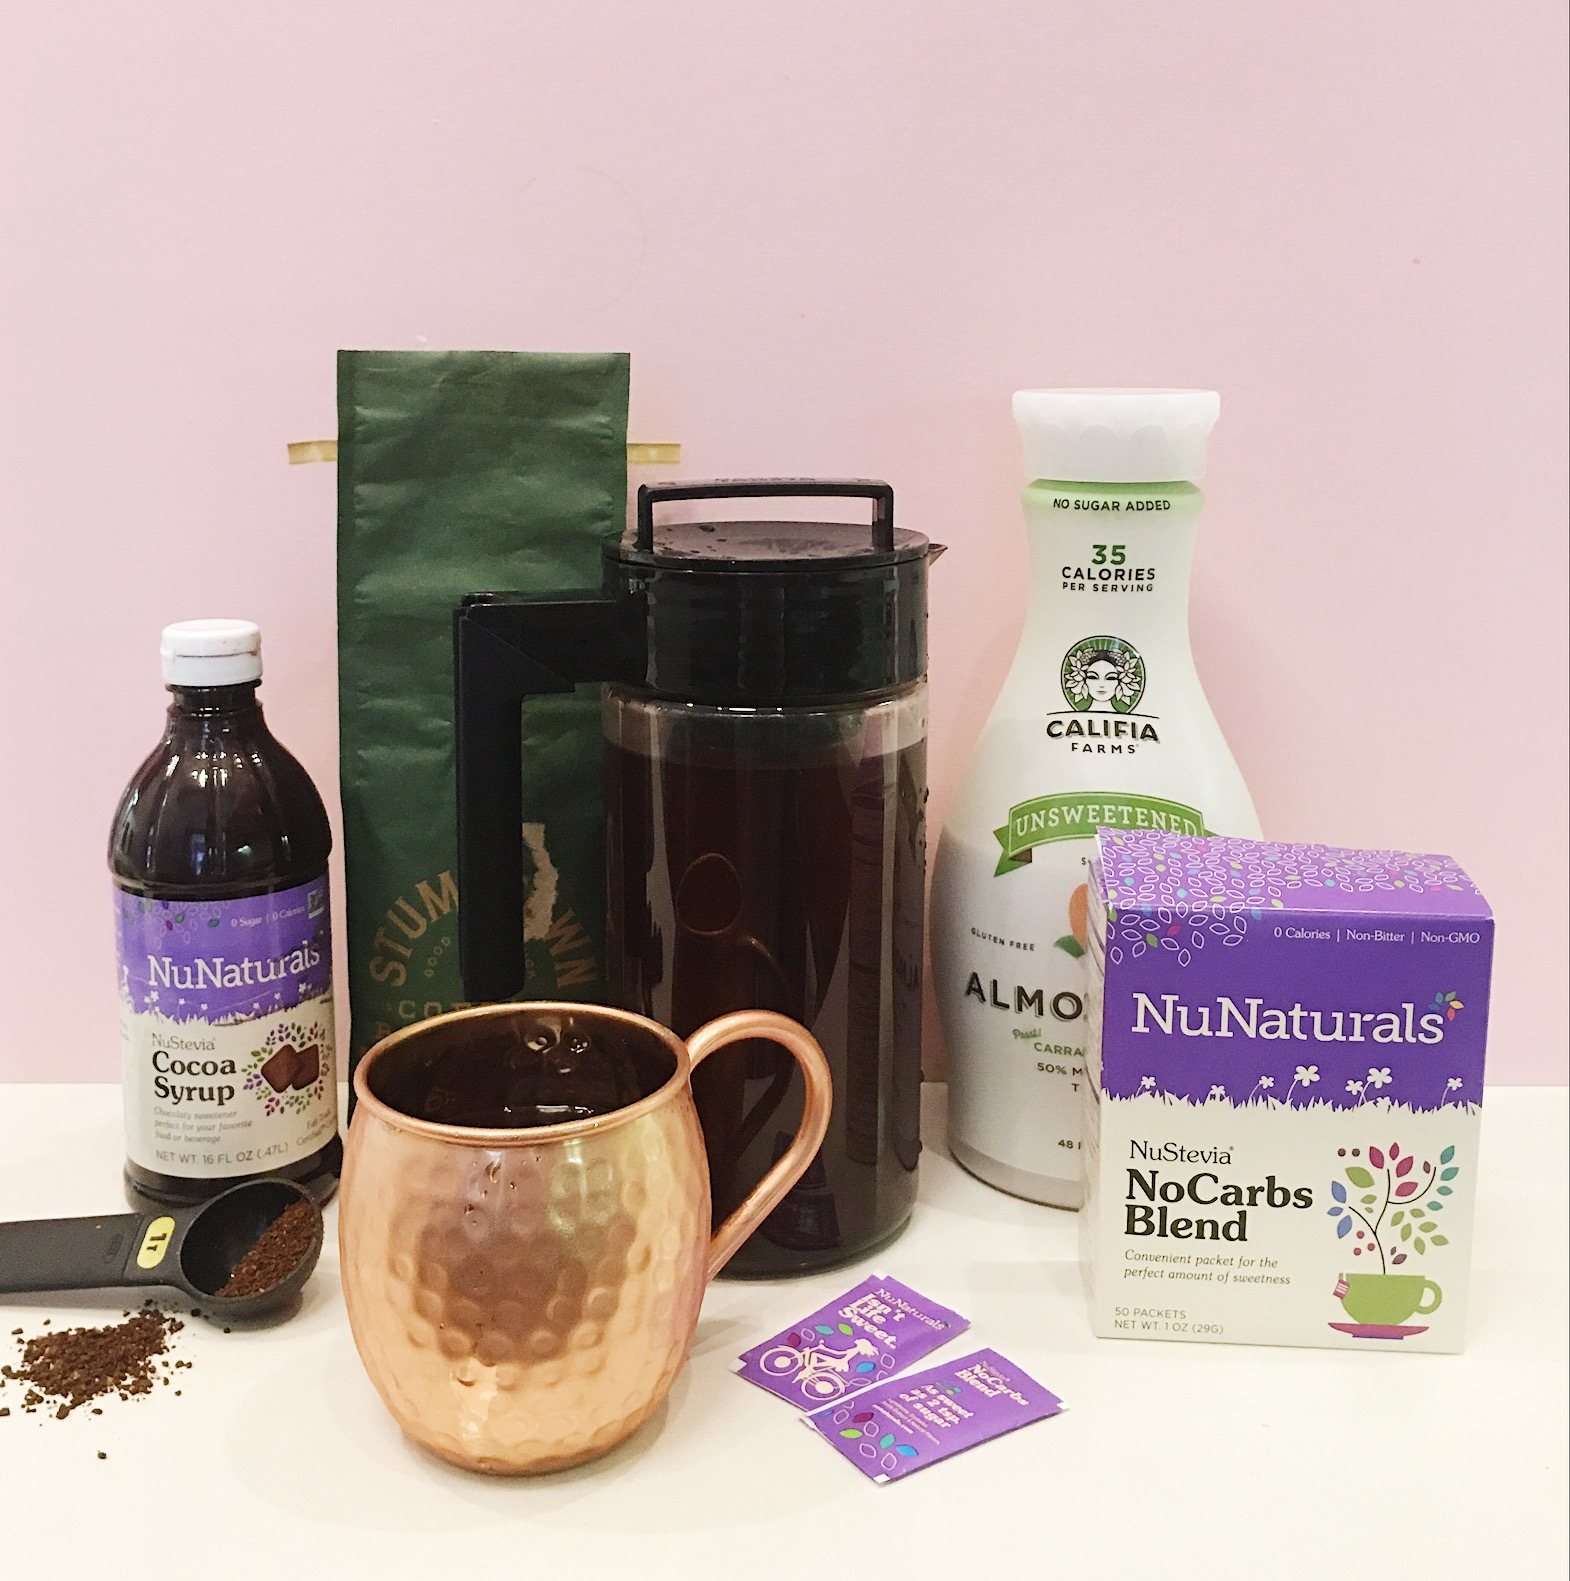 NuNaturals Cold Brew Coffee